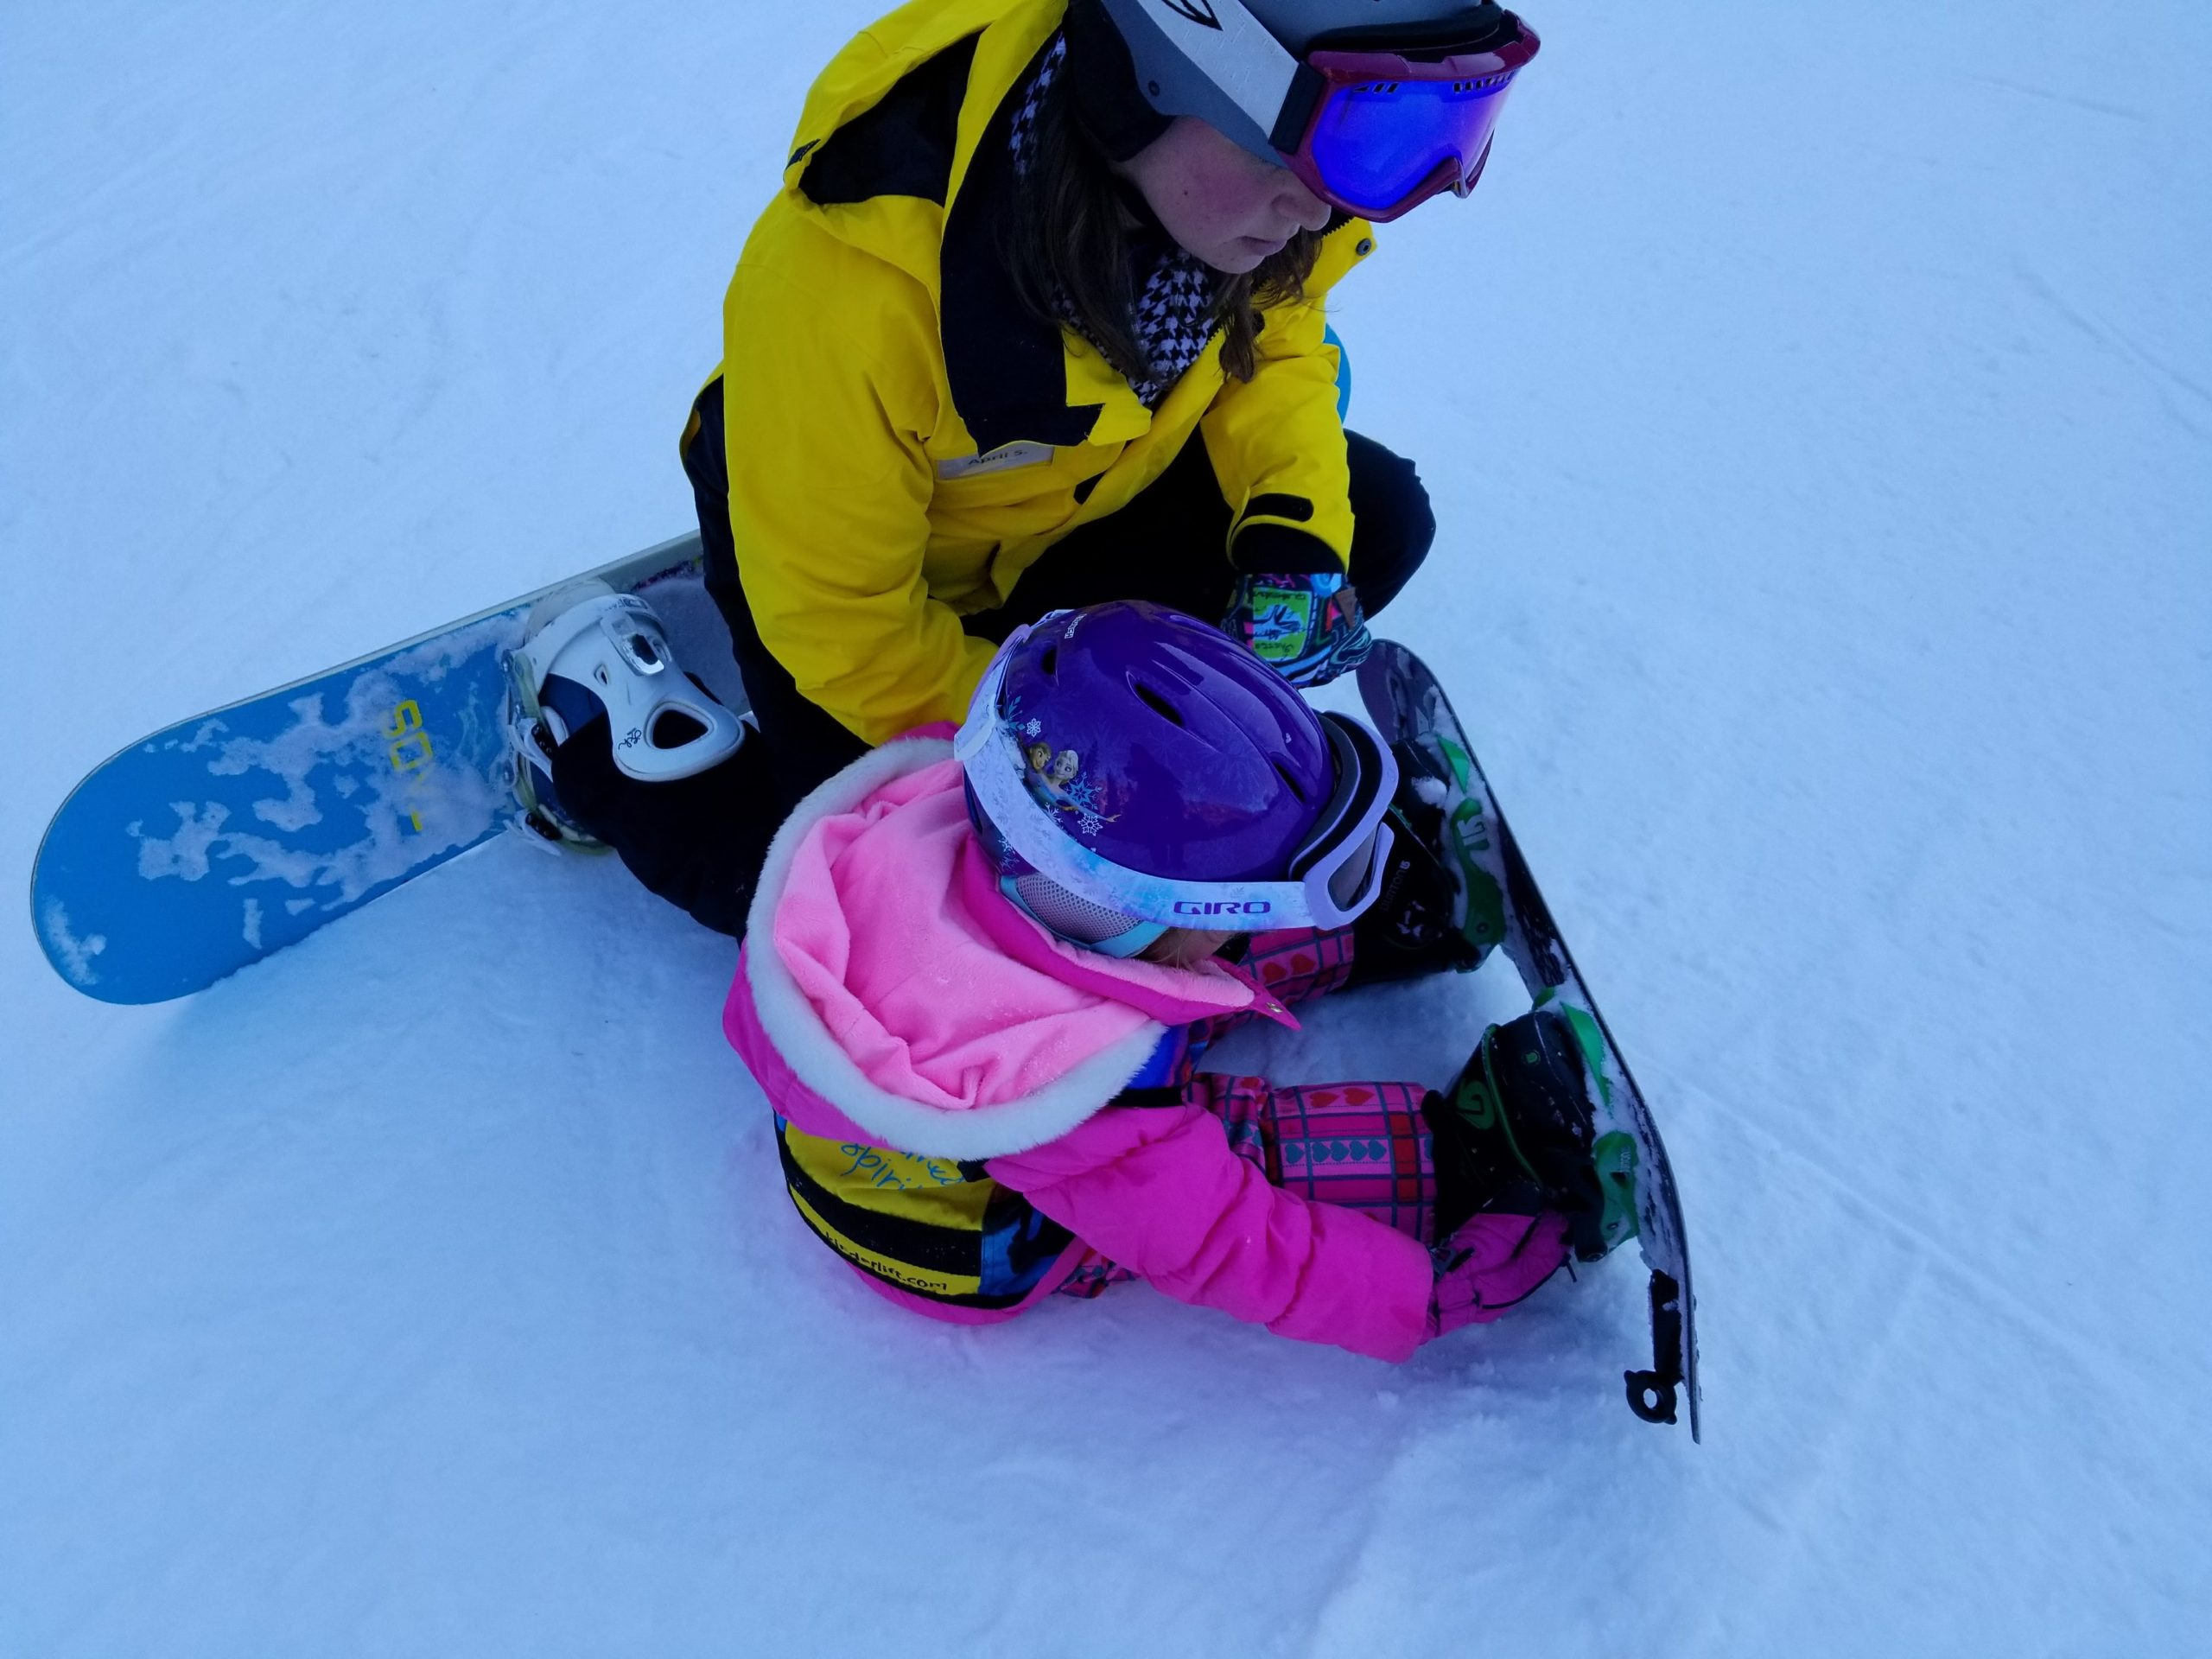 When your winter family vacation includes a day on the ski slopes, be sure to layer your toddler to keep her comfortable all day. Photo: Diana Rowe